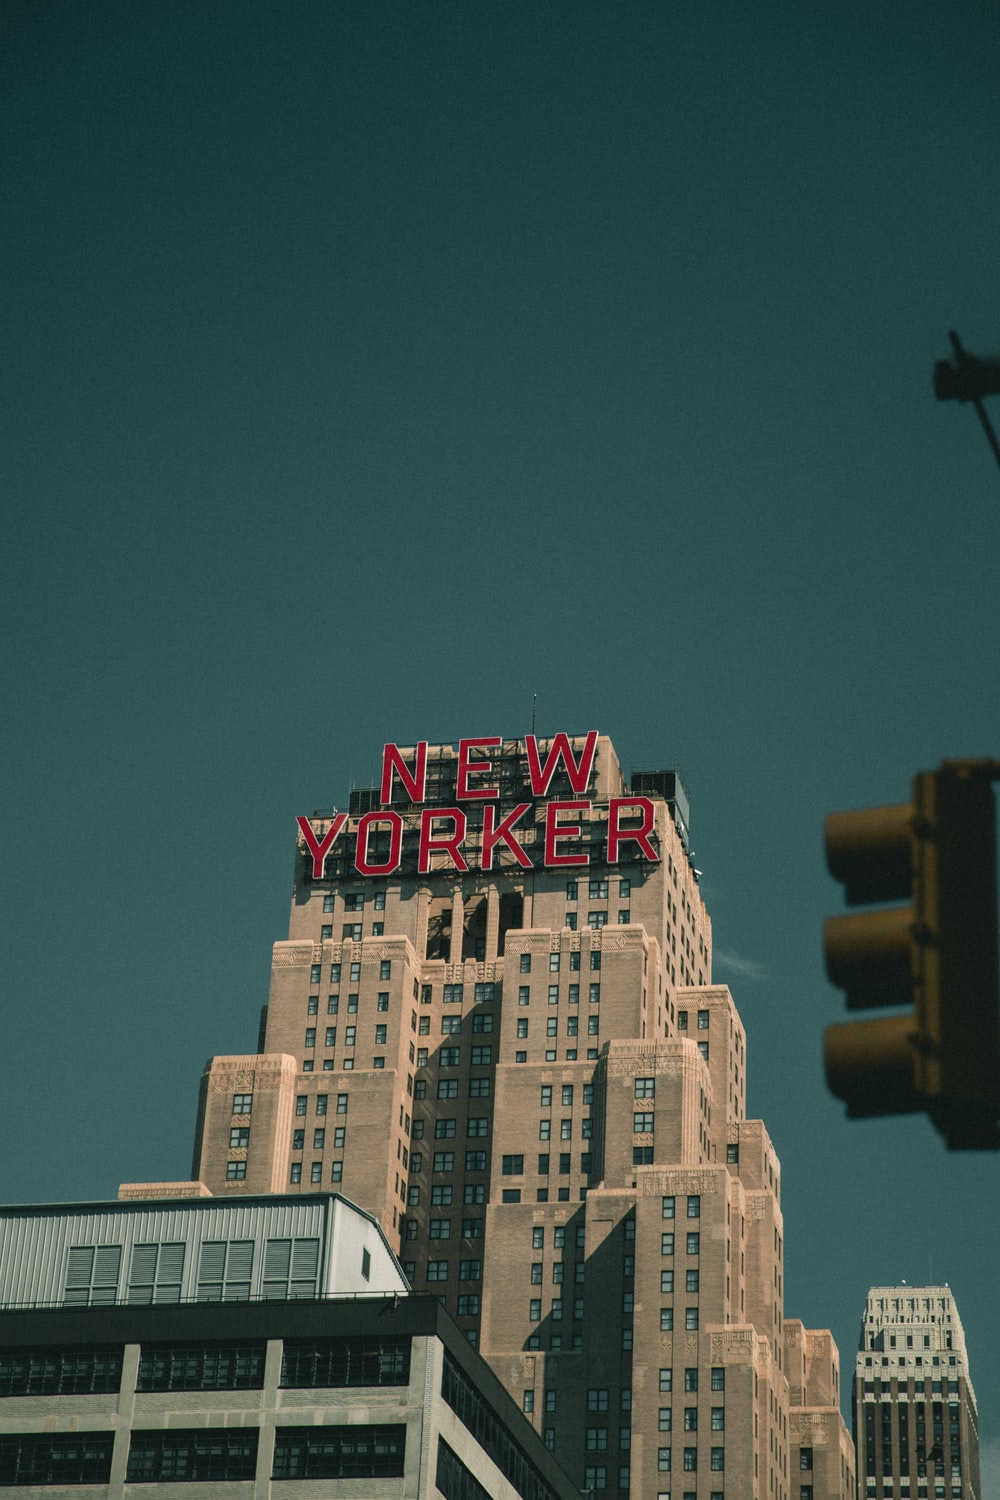 New Yorker signage mounted on building